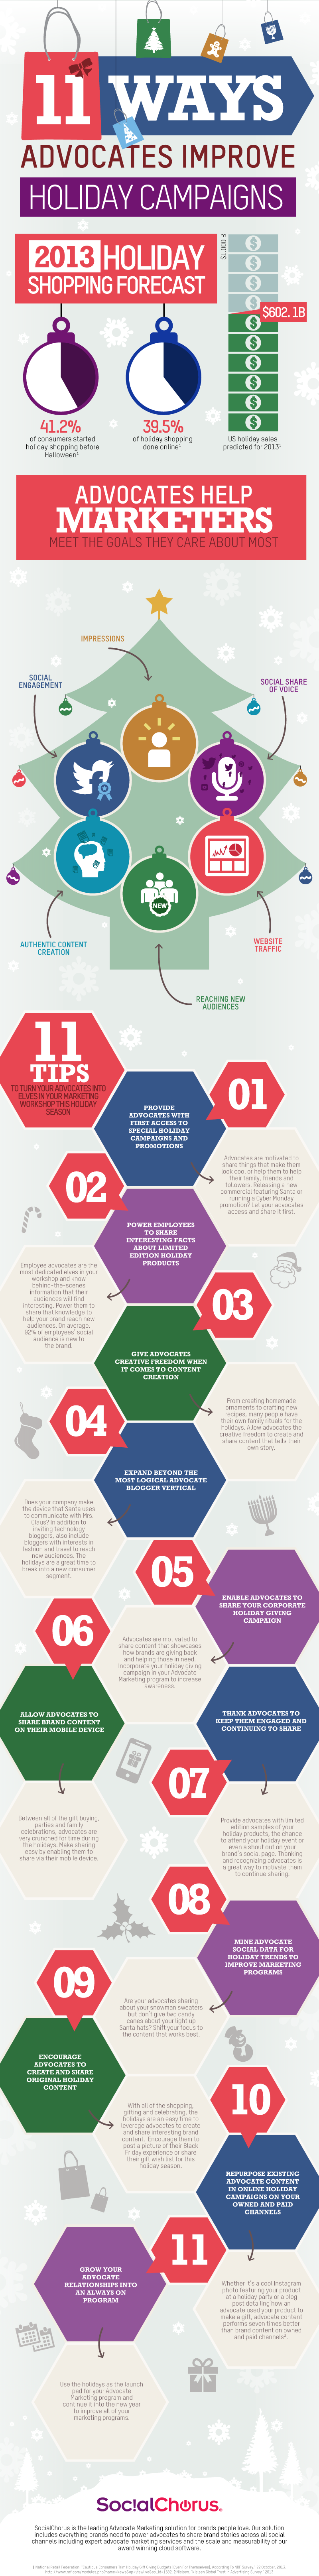 Infographic_11-Ways-Advocates-Improve-Holiday-Campaigns